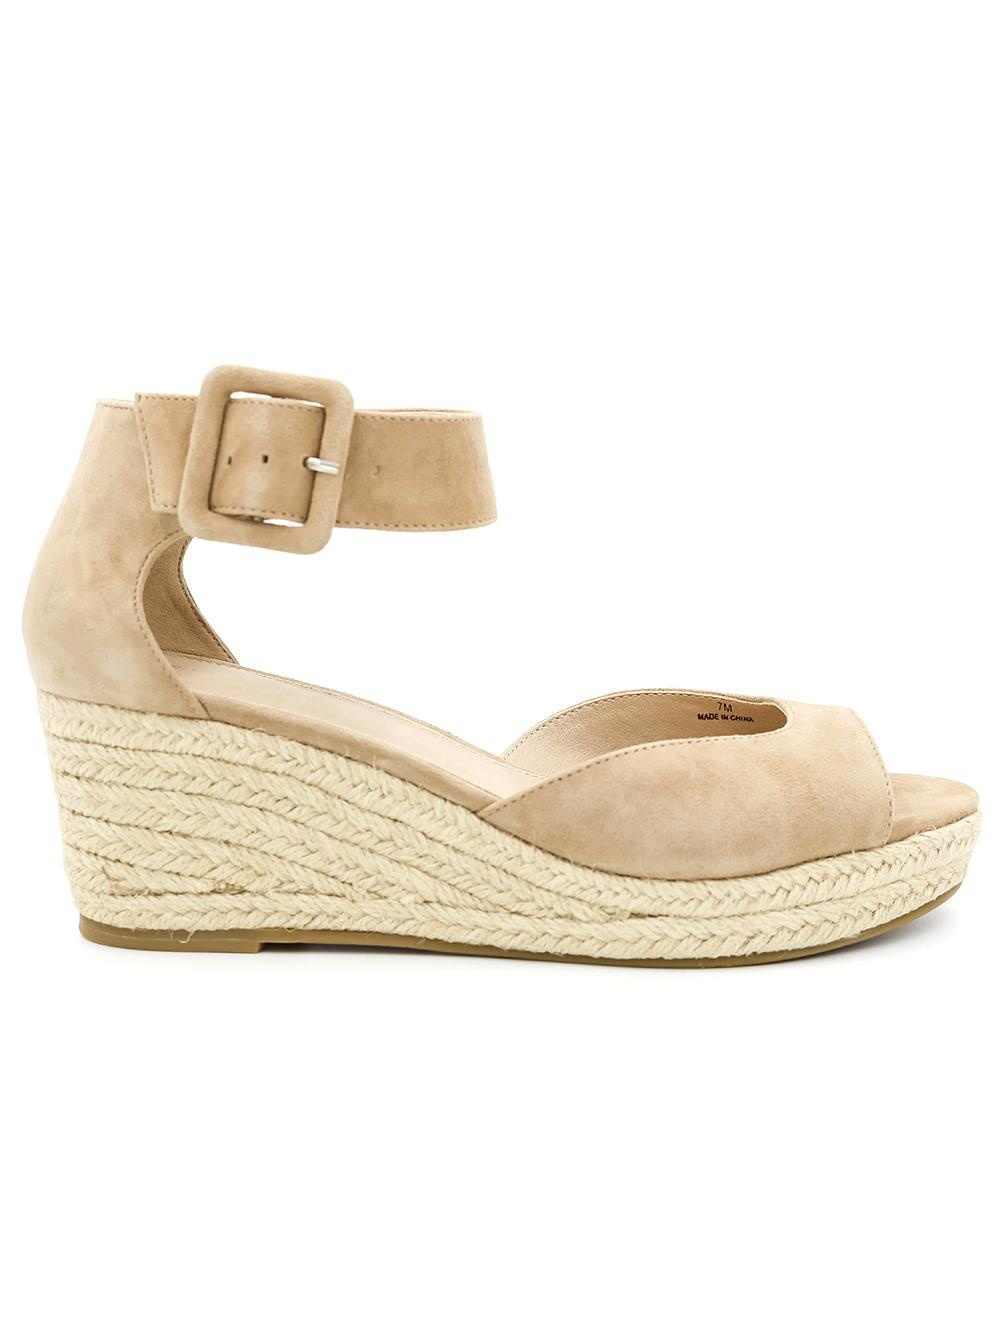 Wedge Espadrille Sandal With Buckle Ankle Strap